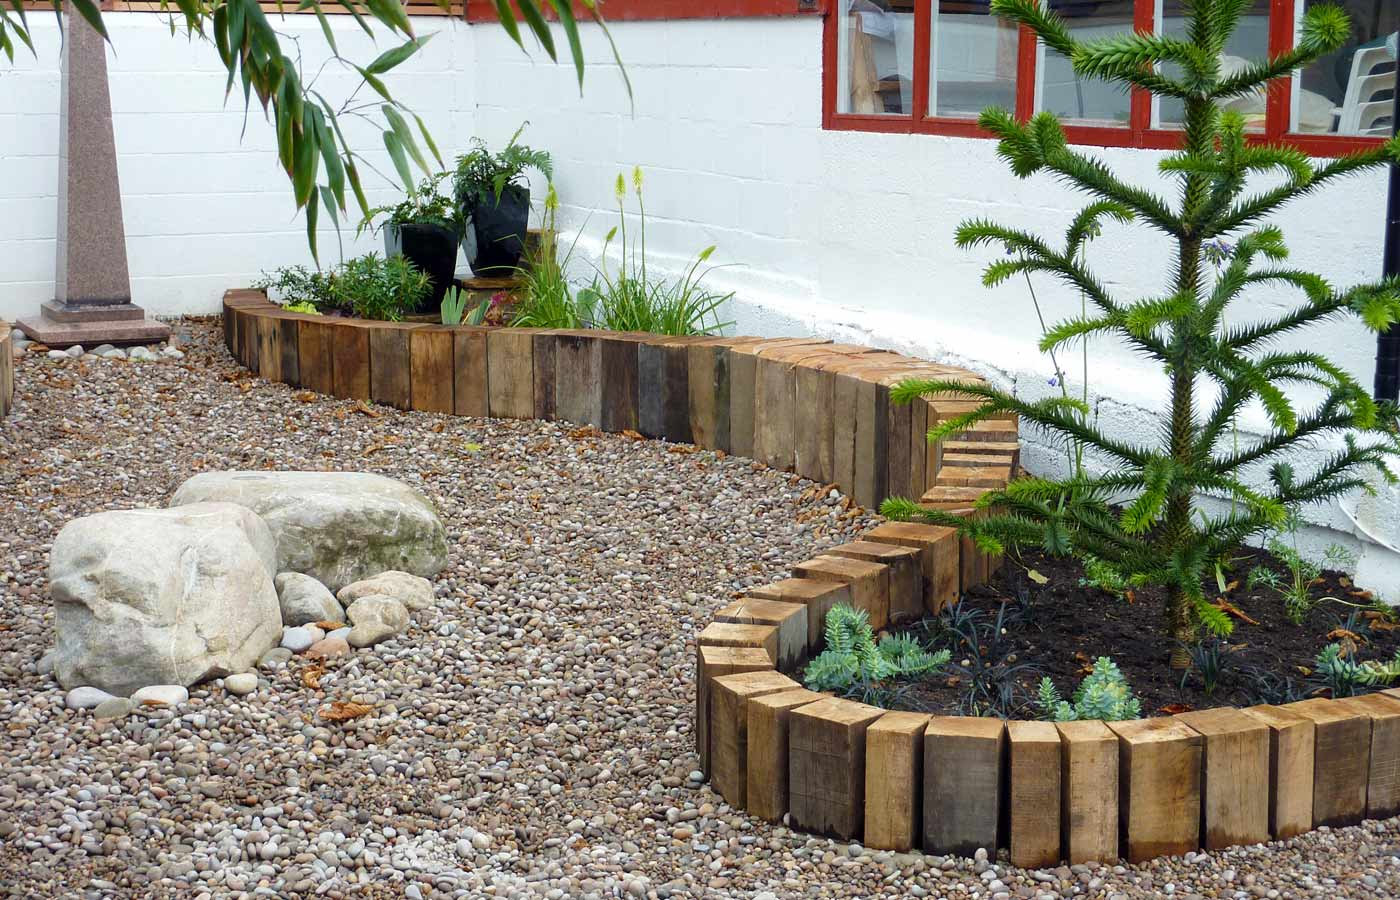 Reclaimed oak beams contain the planting areas and provide seating